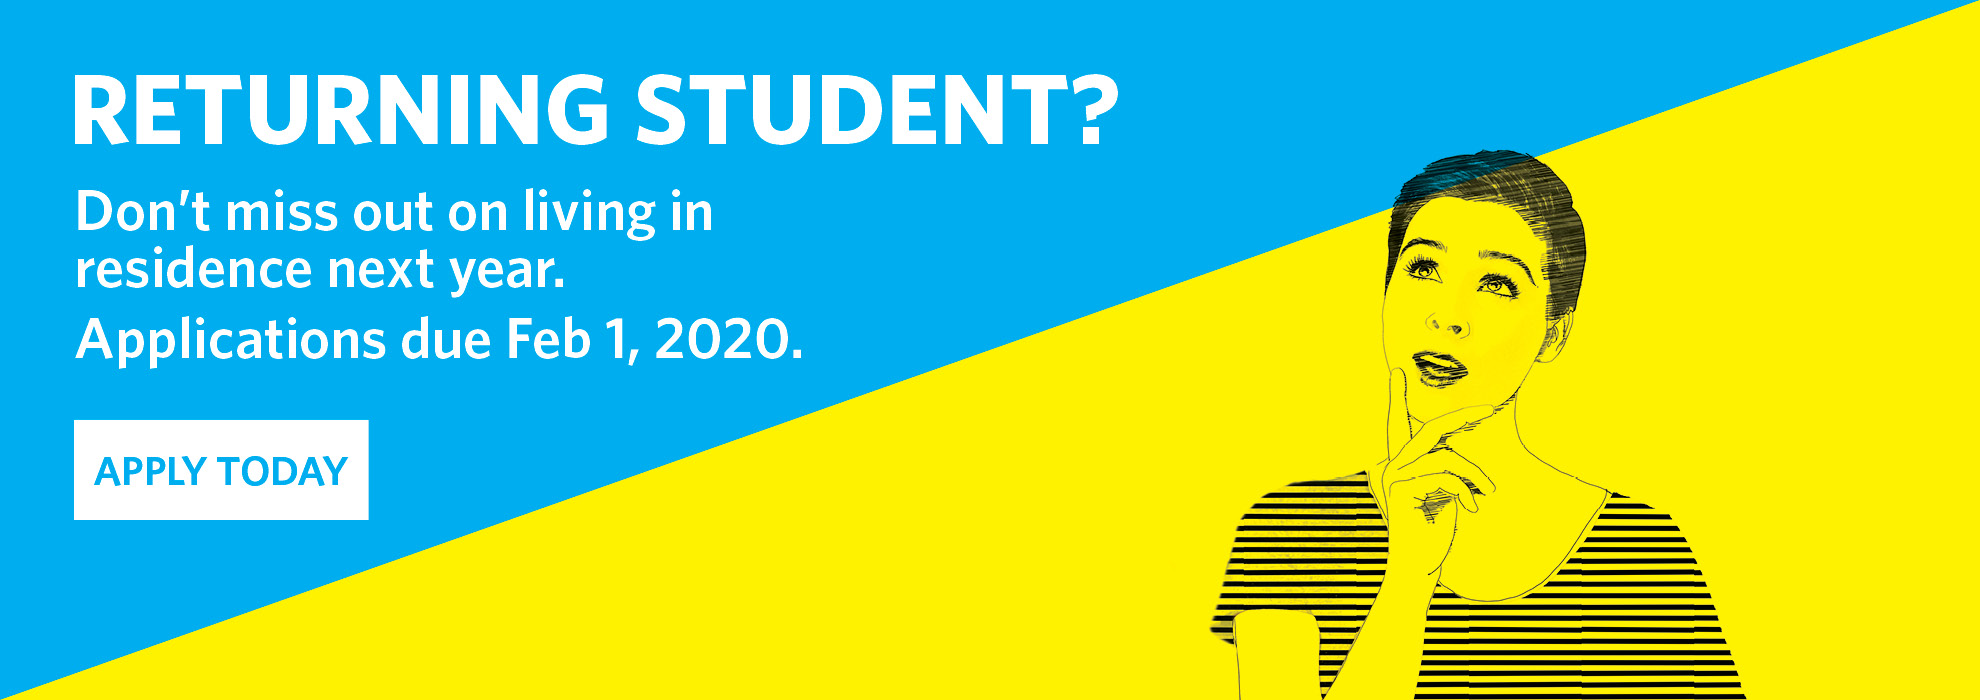 Apply to live in residence for next year